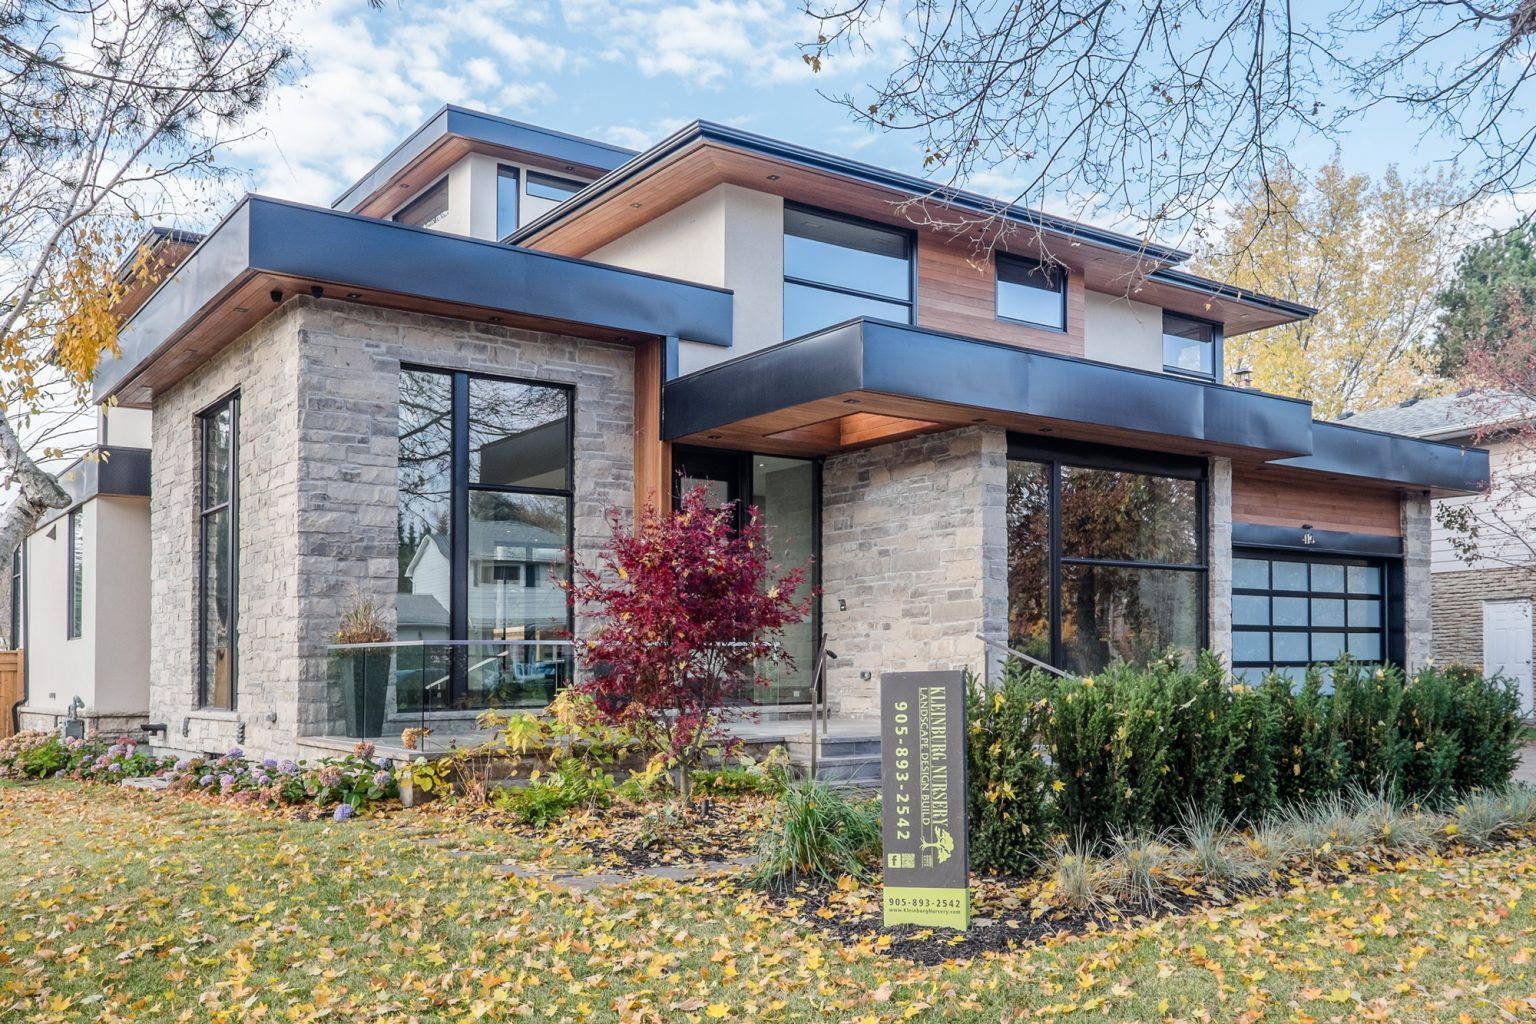 oakville-detached-home-with-glass-railings-02